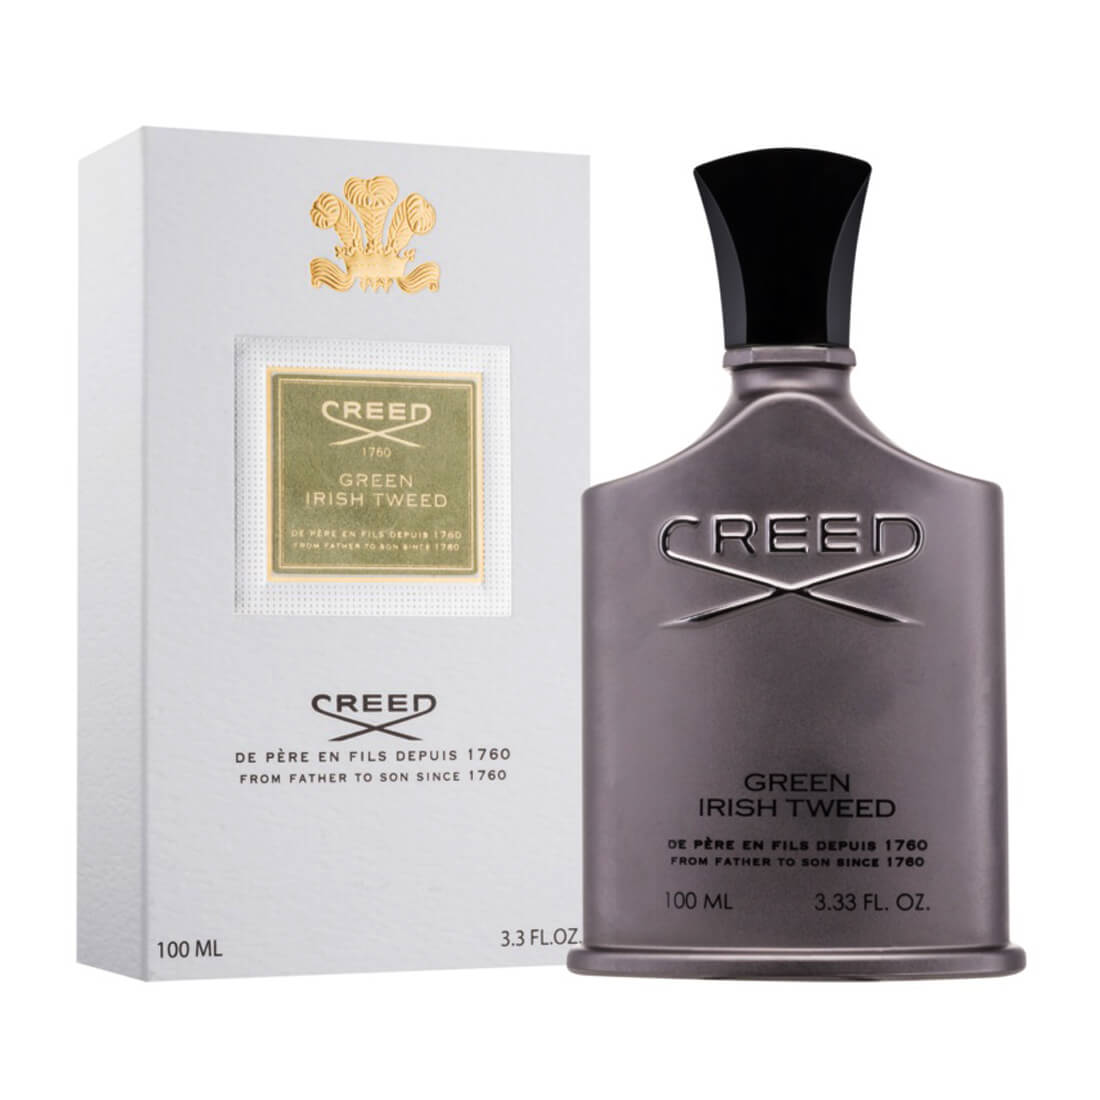 Creed Green Irish Tweed Eau De Perfume For Men - 100ml